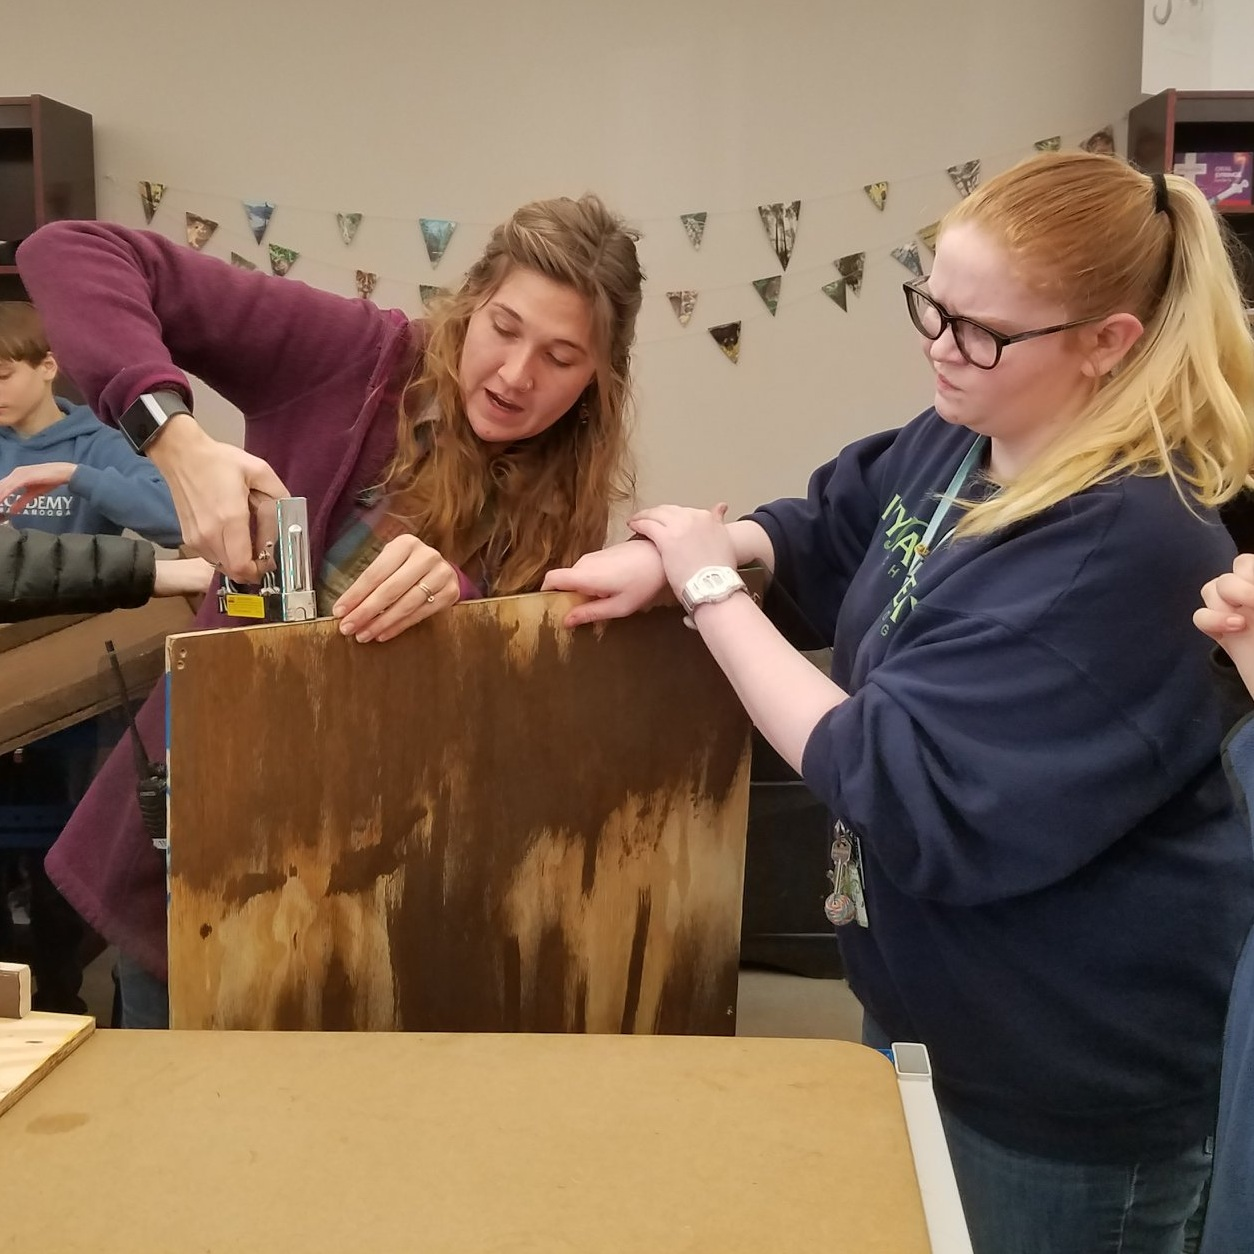 Ms. Foster building bat boxes with Agricultural Science students.